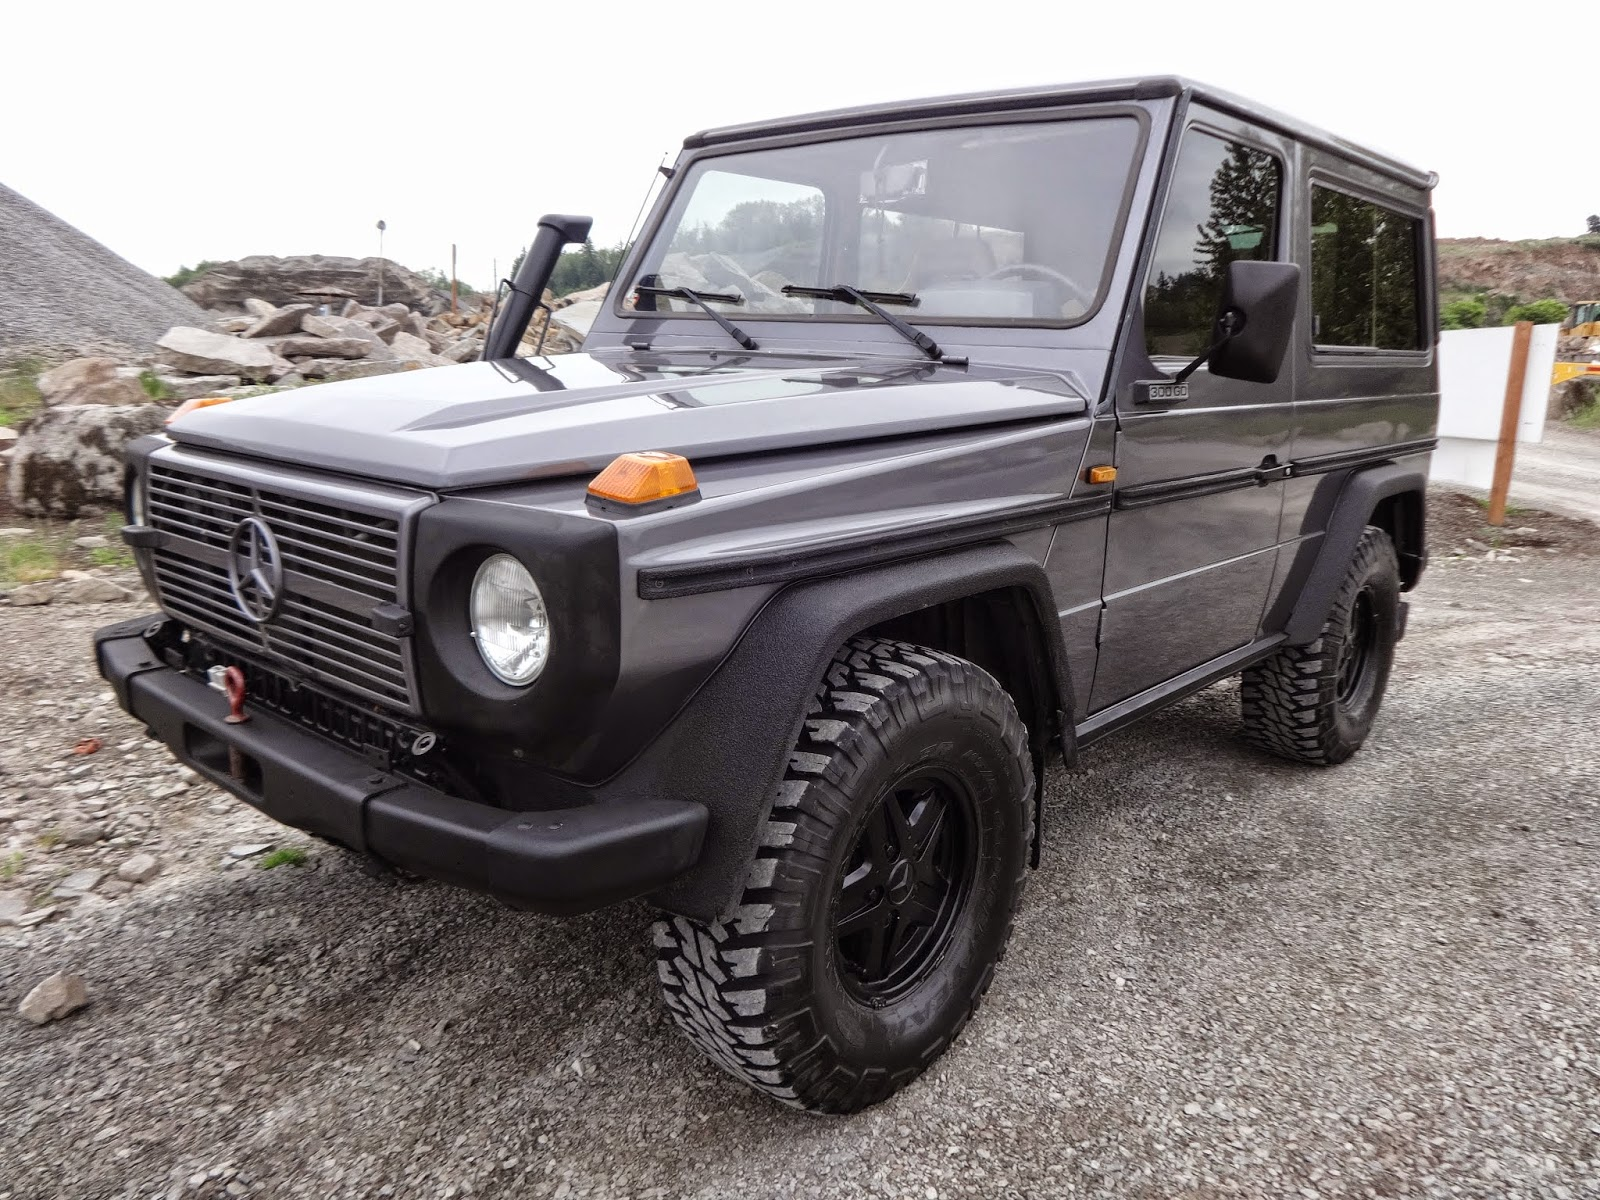 Used Jeeps For Sale In Nj used jeep wrangler for sale by owner in